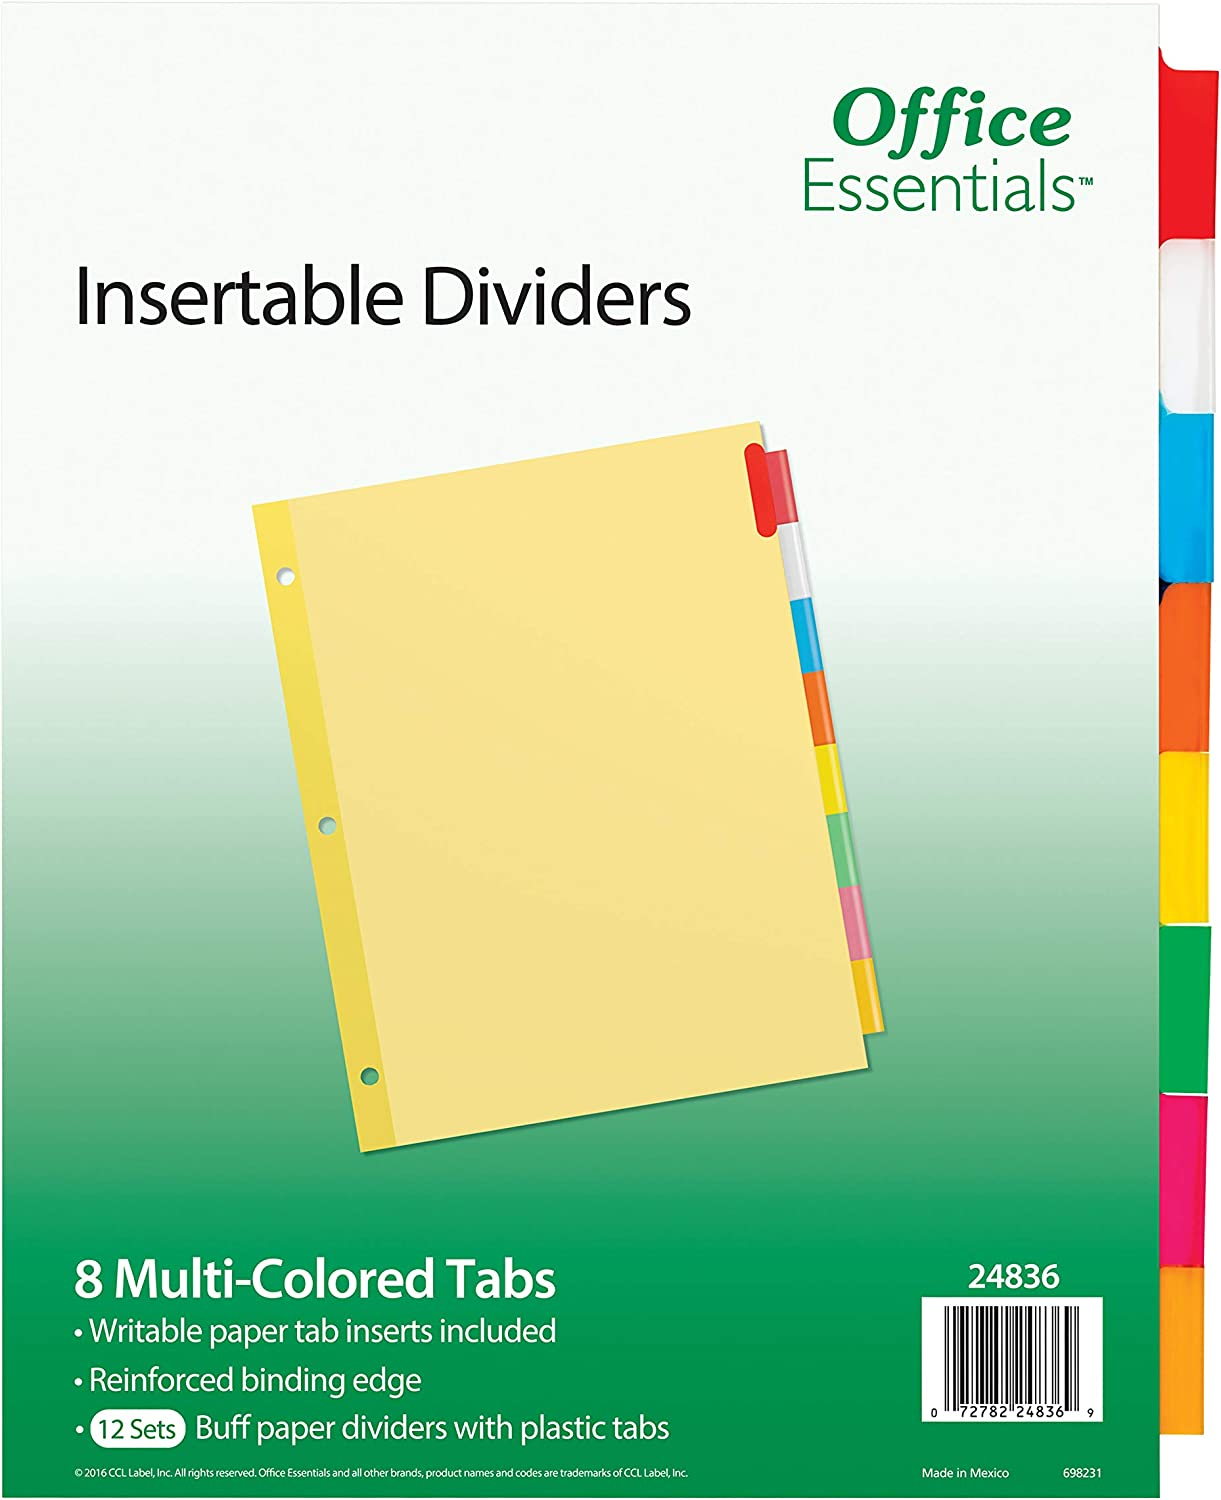 Office Essentials Insertable Dividers, 8-1/2 x 11, 8 Tab, Multicolor Tab, Buff Paper, 12 Pack (24836)